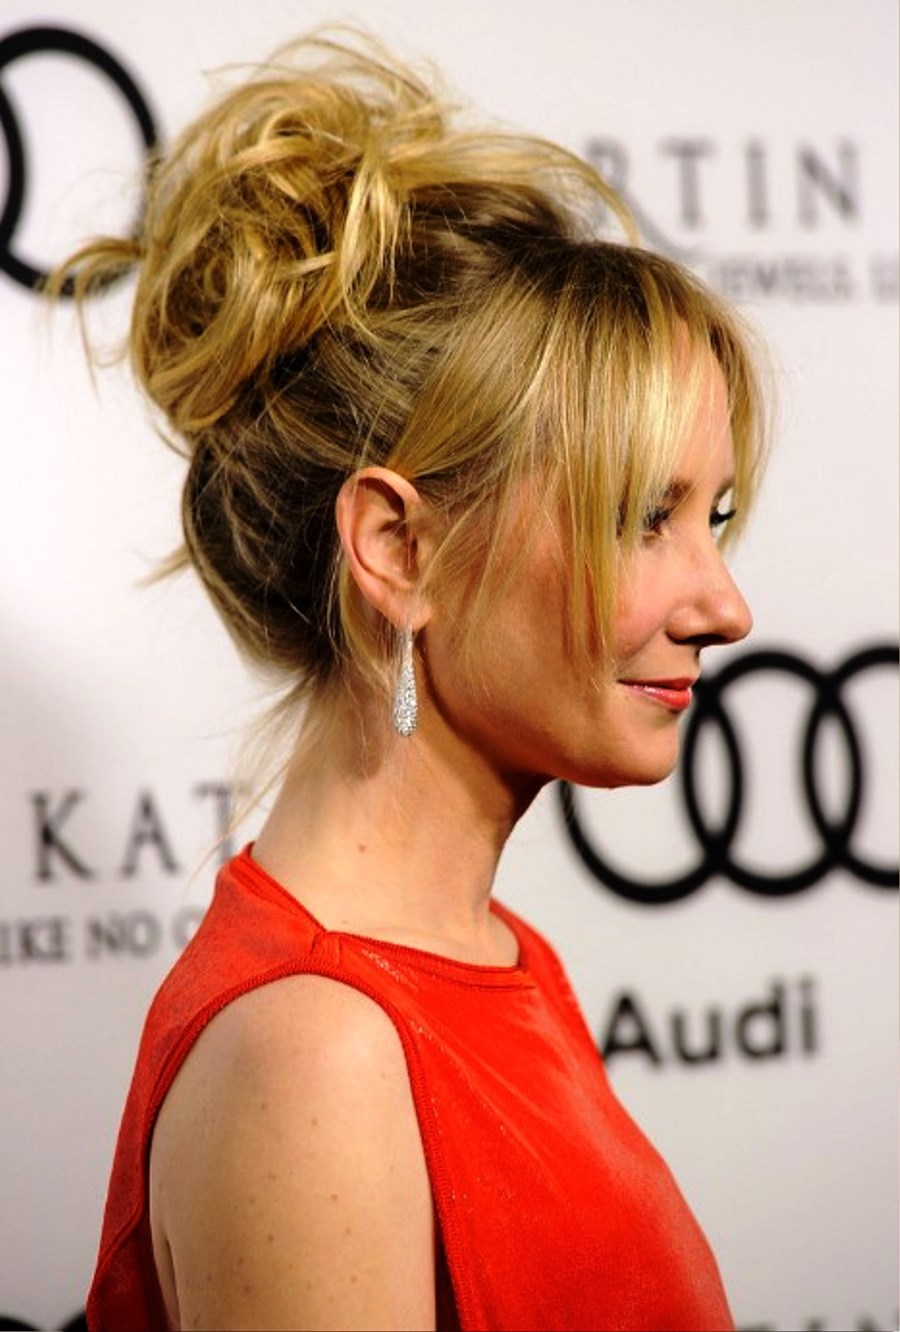 Pictures Of Anne Heche Sexy Messy Updo With Tousled Curls